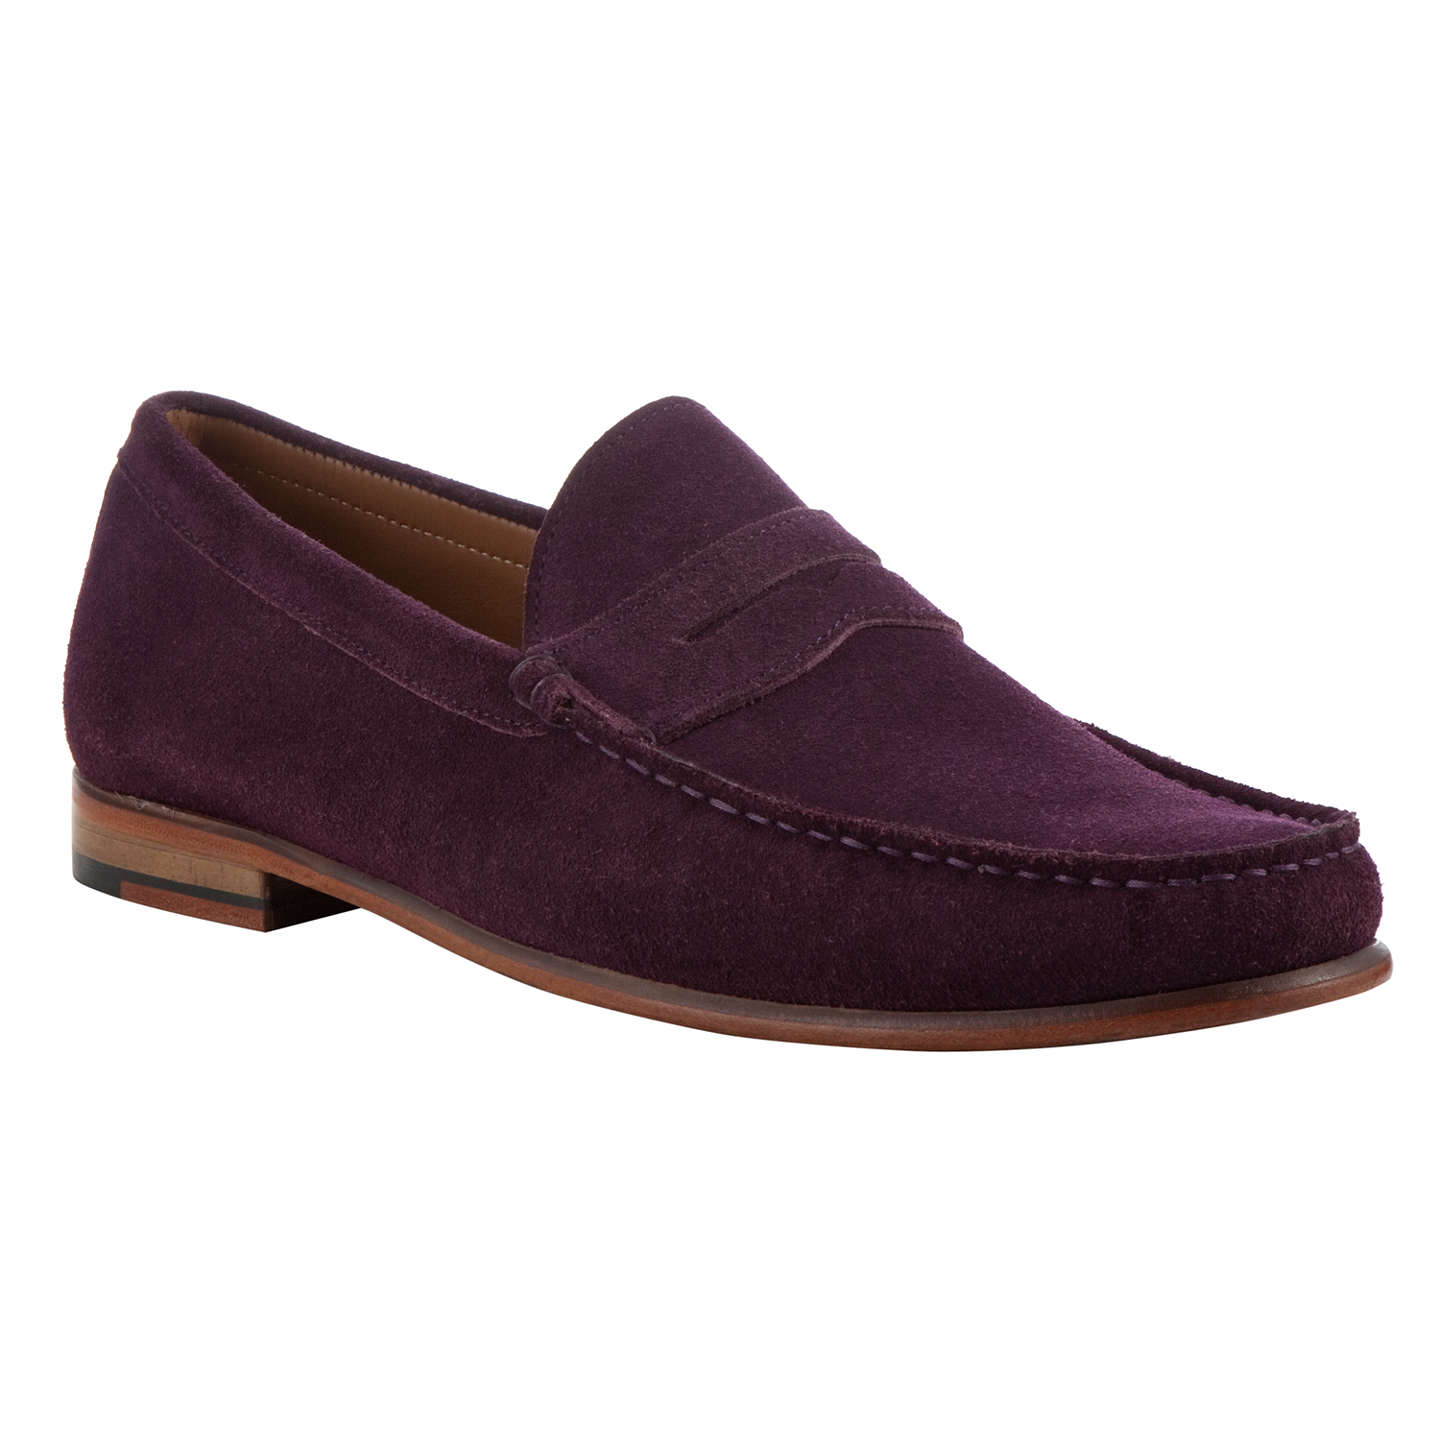 BuyJohn Lewis Lloyd Suede Penny Loafers, Aubergine, 7 Online at johnlewis.com